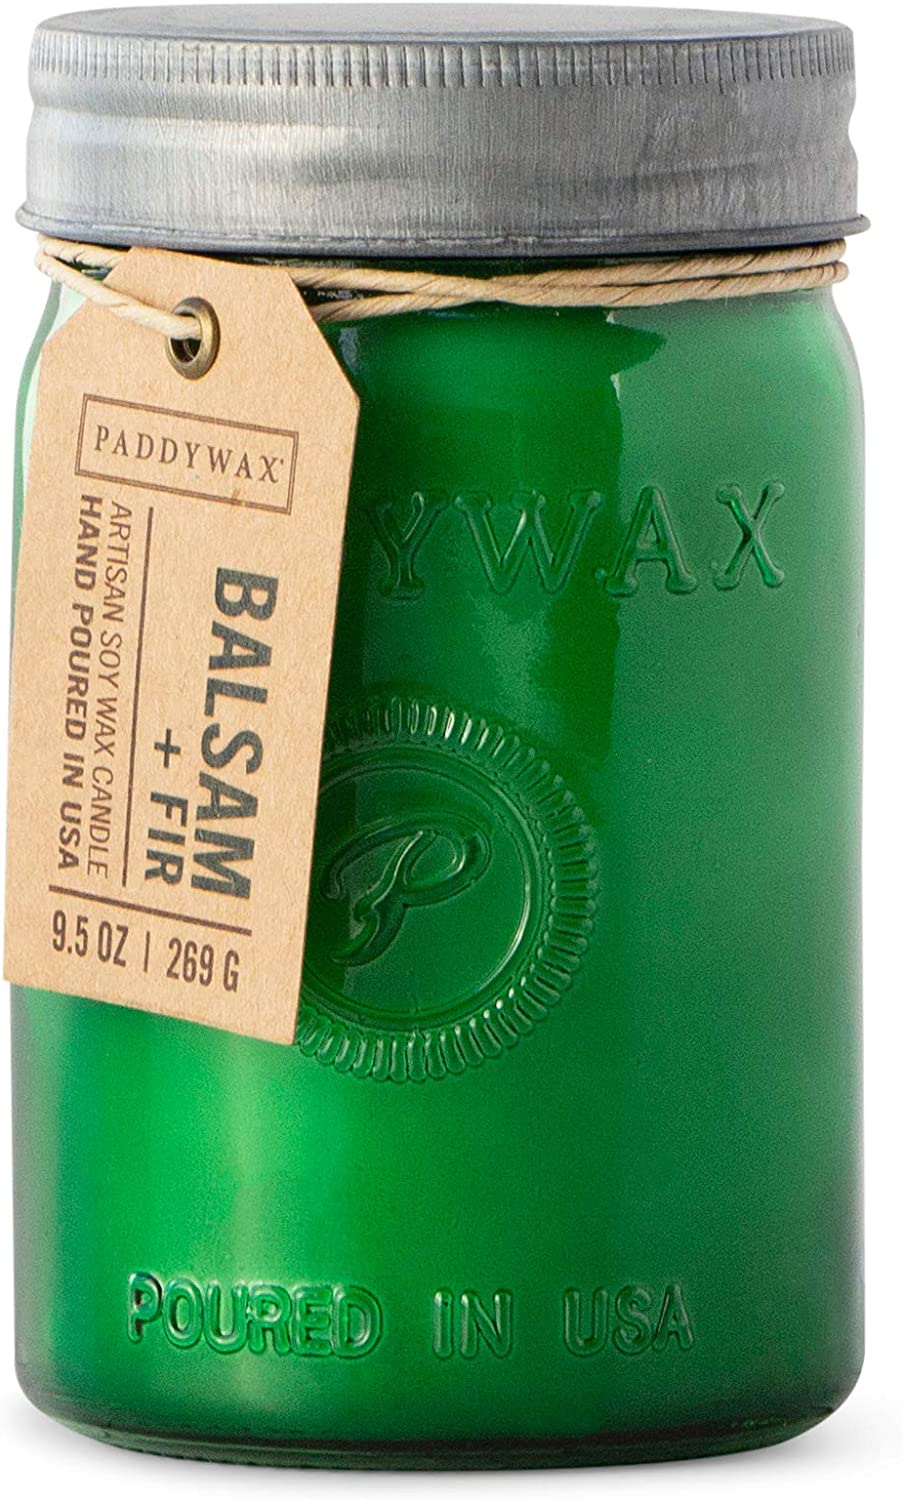 Paddywax Candles Relish Collection Scented Candle, 9.5-Ounce, Balsam + Fir